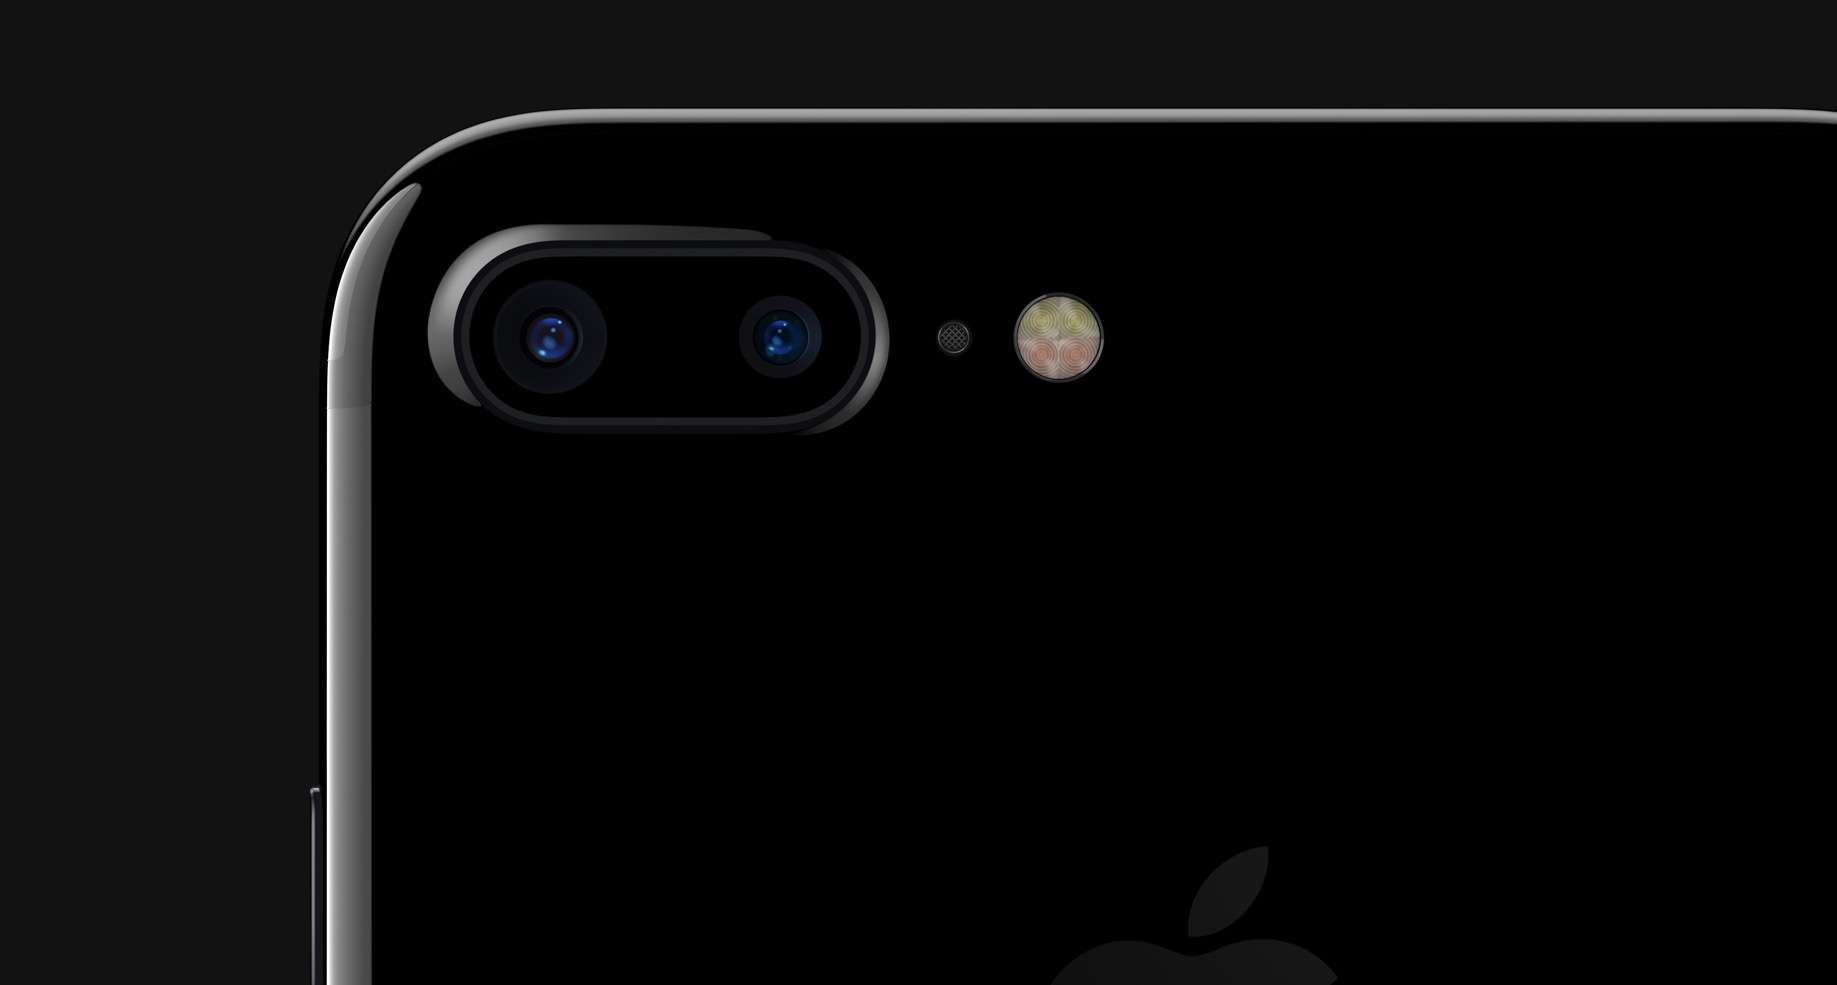 The iPhone 7 Plus will completely change your photos.